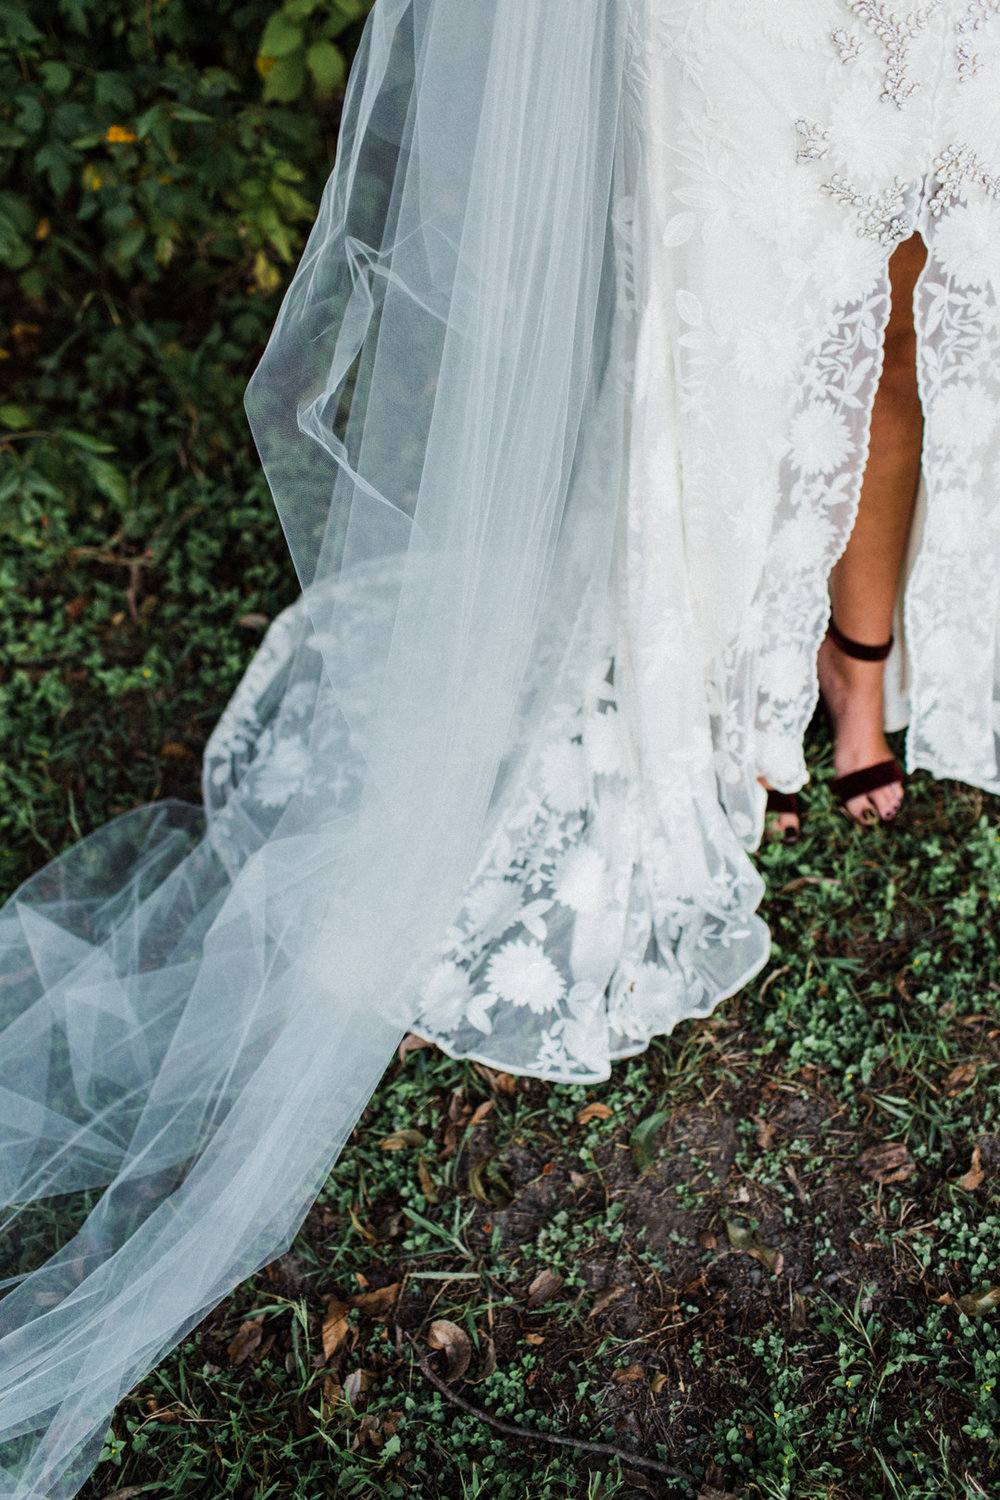 McCurdy_Bloom_LaurenBloomPhotography_MoodyDallasBridalsLaurenBloomPhotography14of37_big.jpg